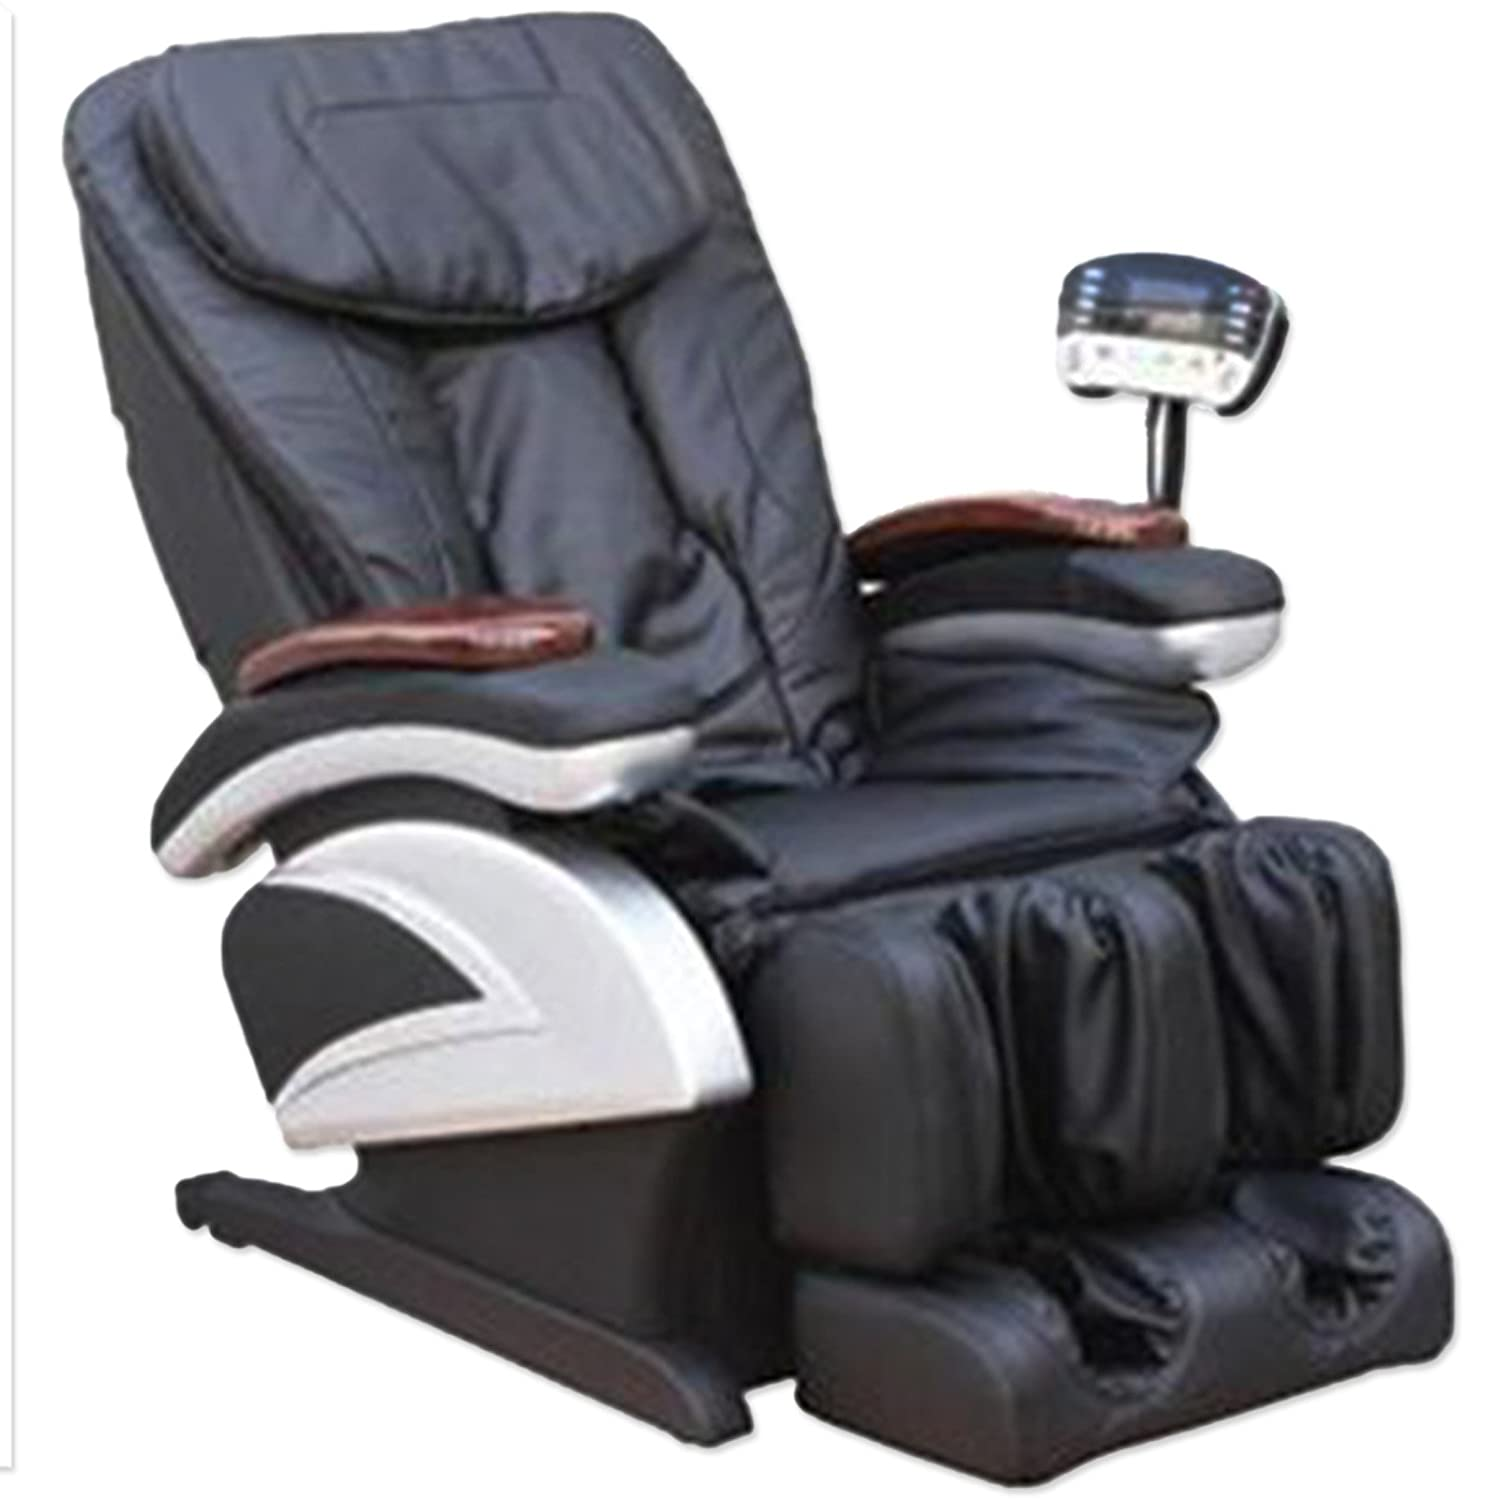 office reclining chair. Amazon.com : Black Full Body Shiatsu Massage Recliner Chair Heater Foot Rest Salon Spa Office Home Everything Else Reclining